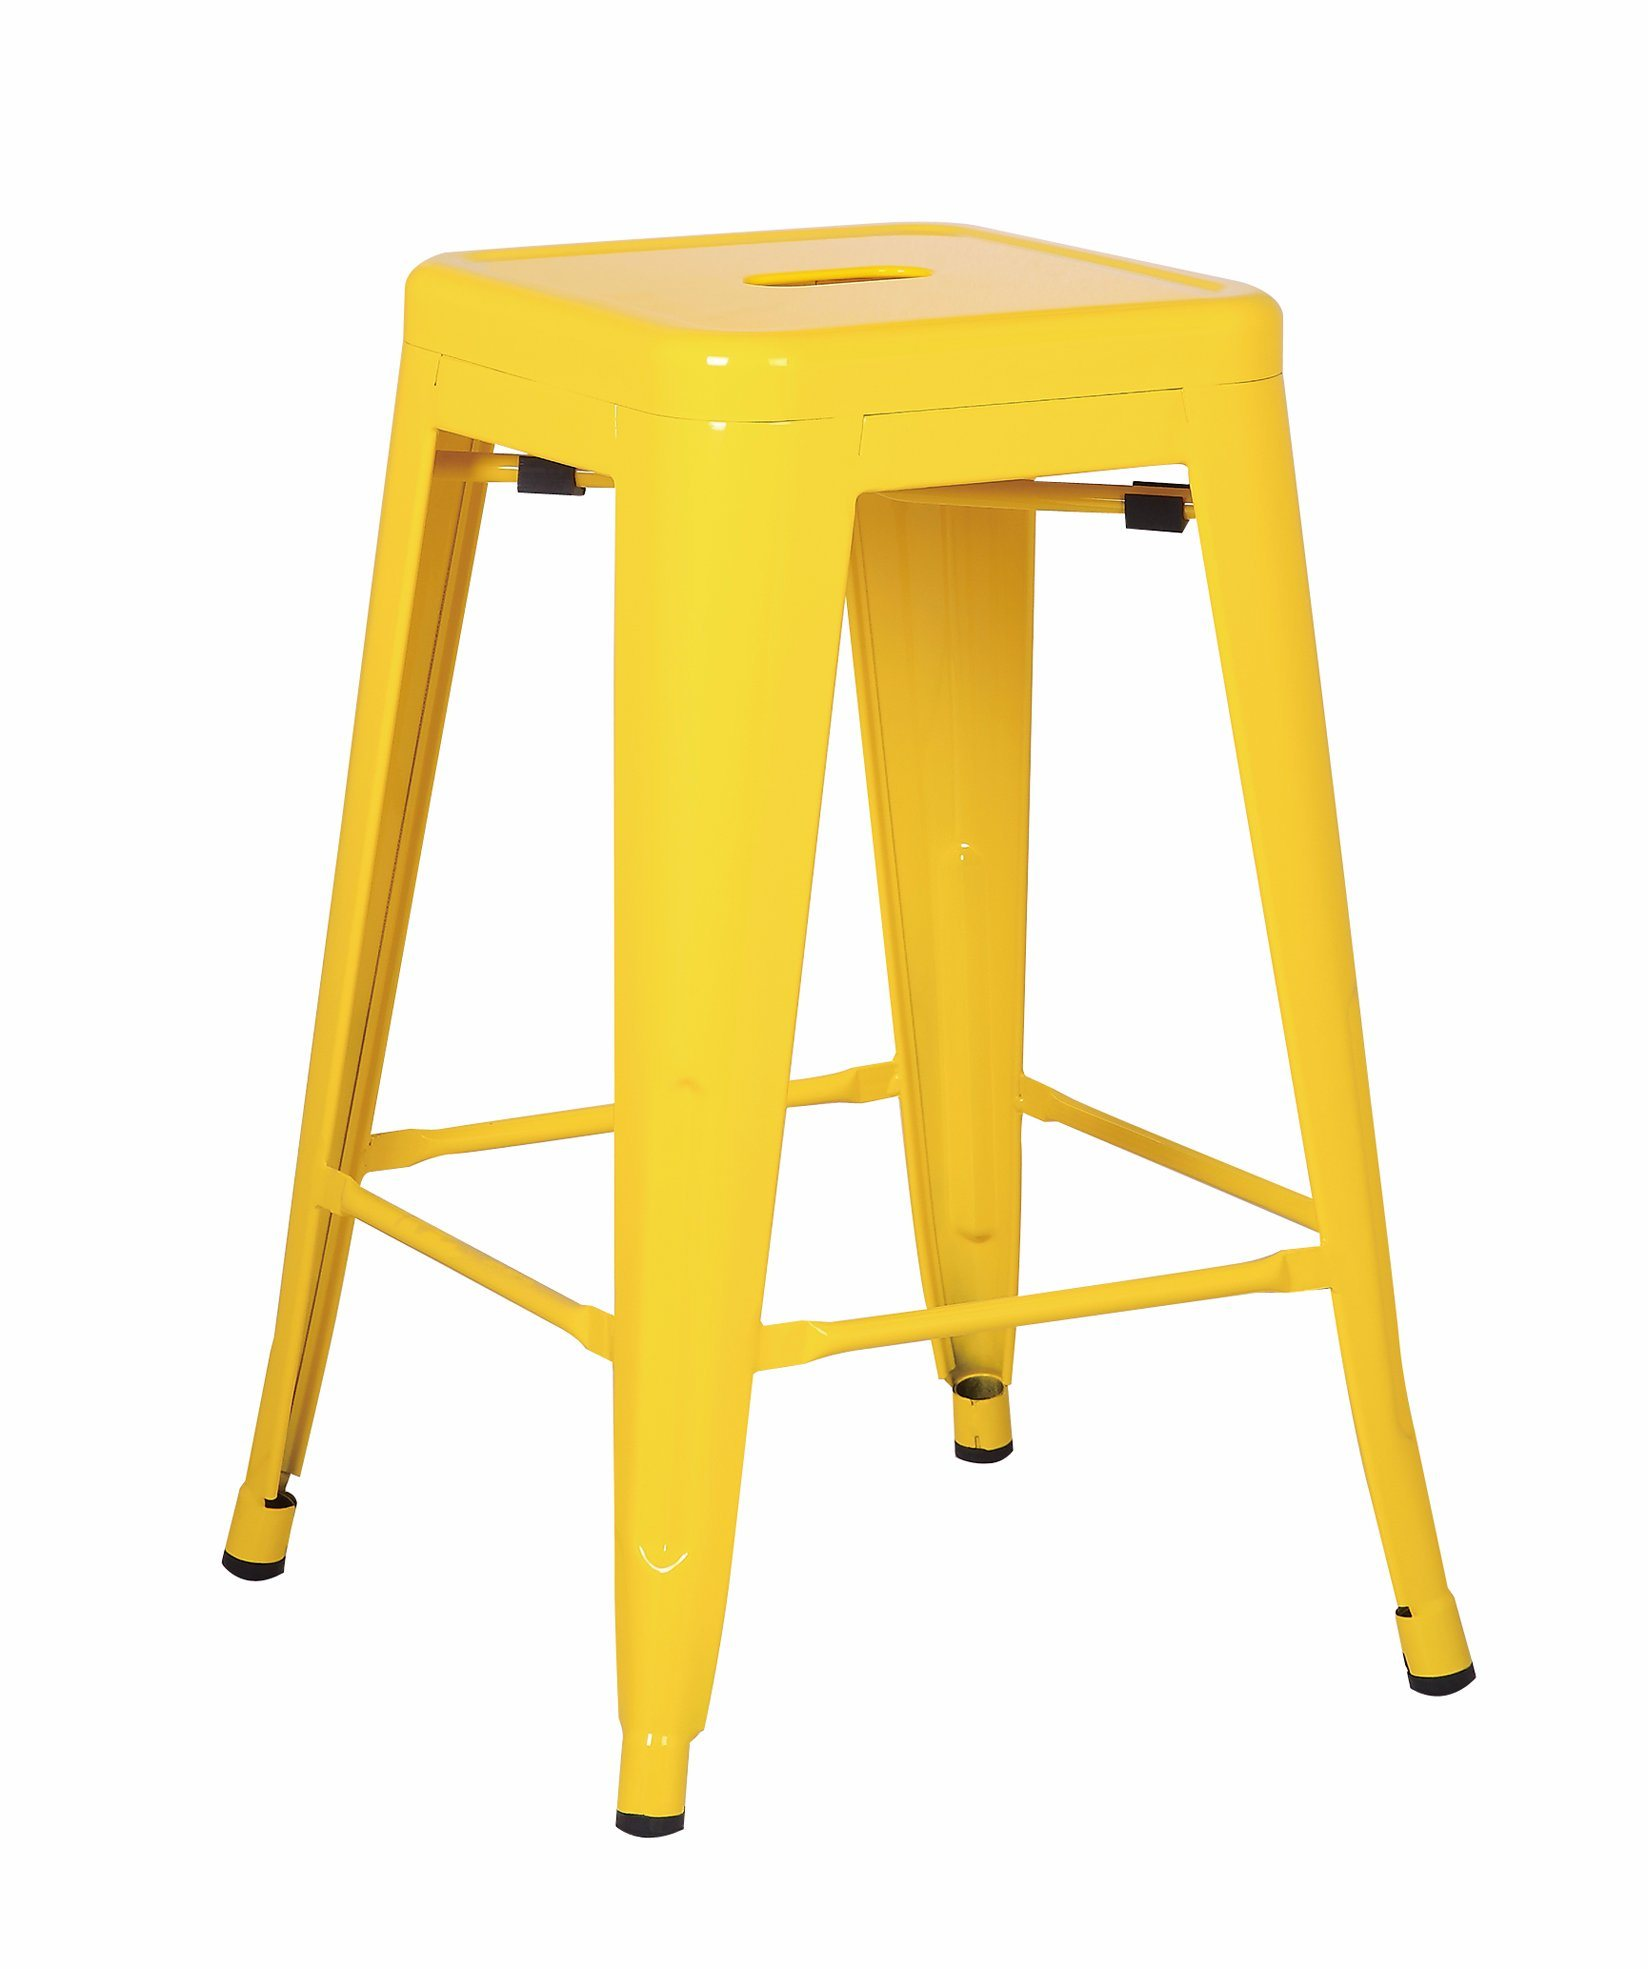 China Metal Bar Stool 30 Tolix Style Ibdoor Outdoor Barstool Modern Industrial Backless Light Weight Bar Stools With Square Seat Set Of 4 China Metal Chair Dining Chair